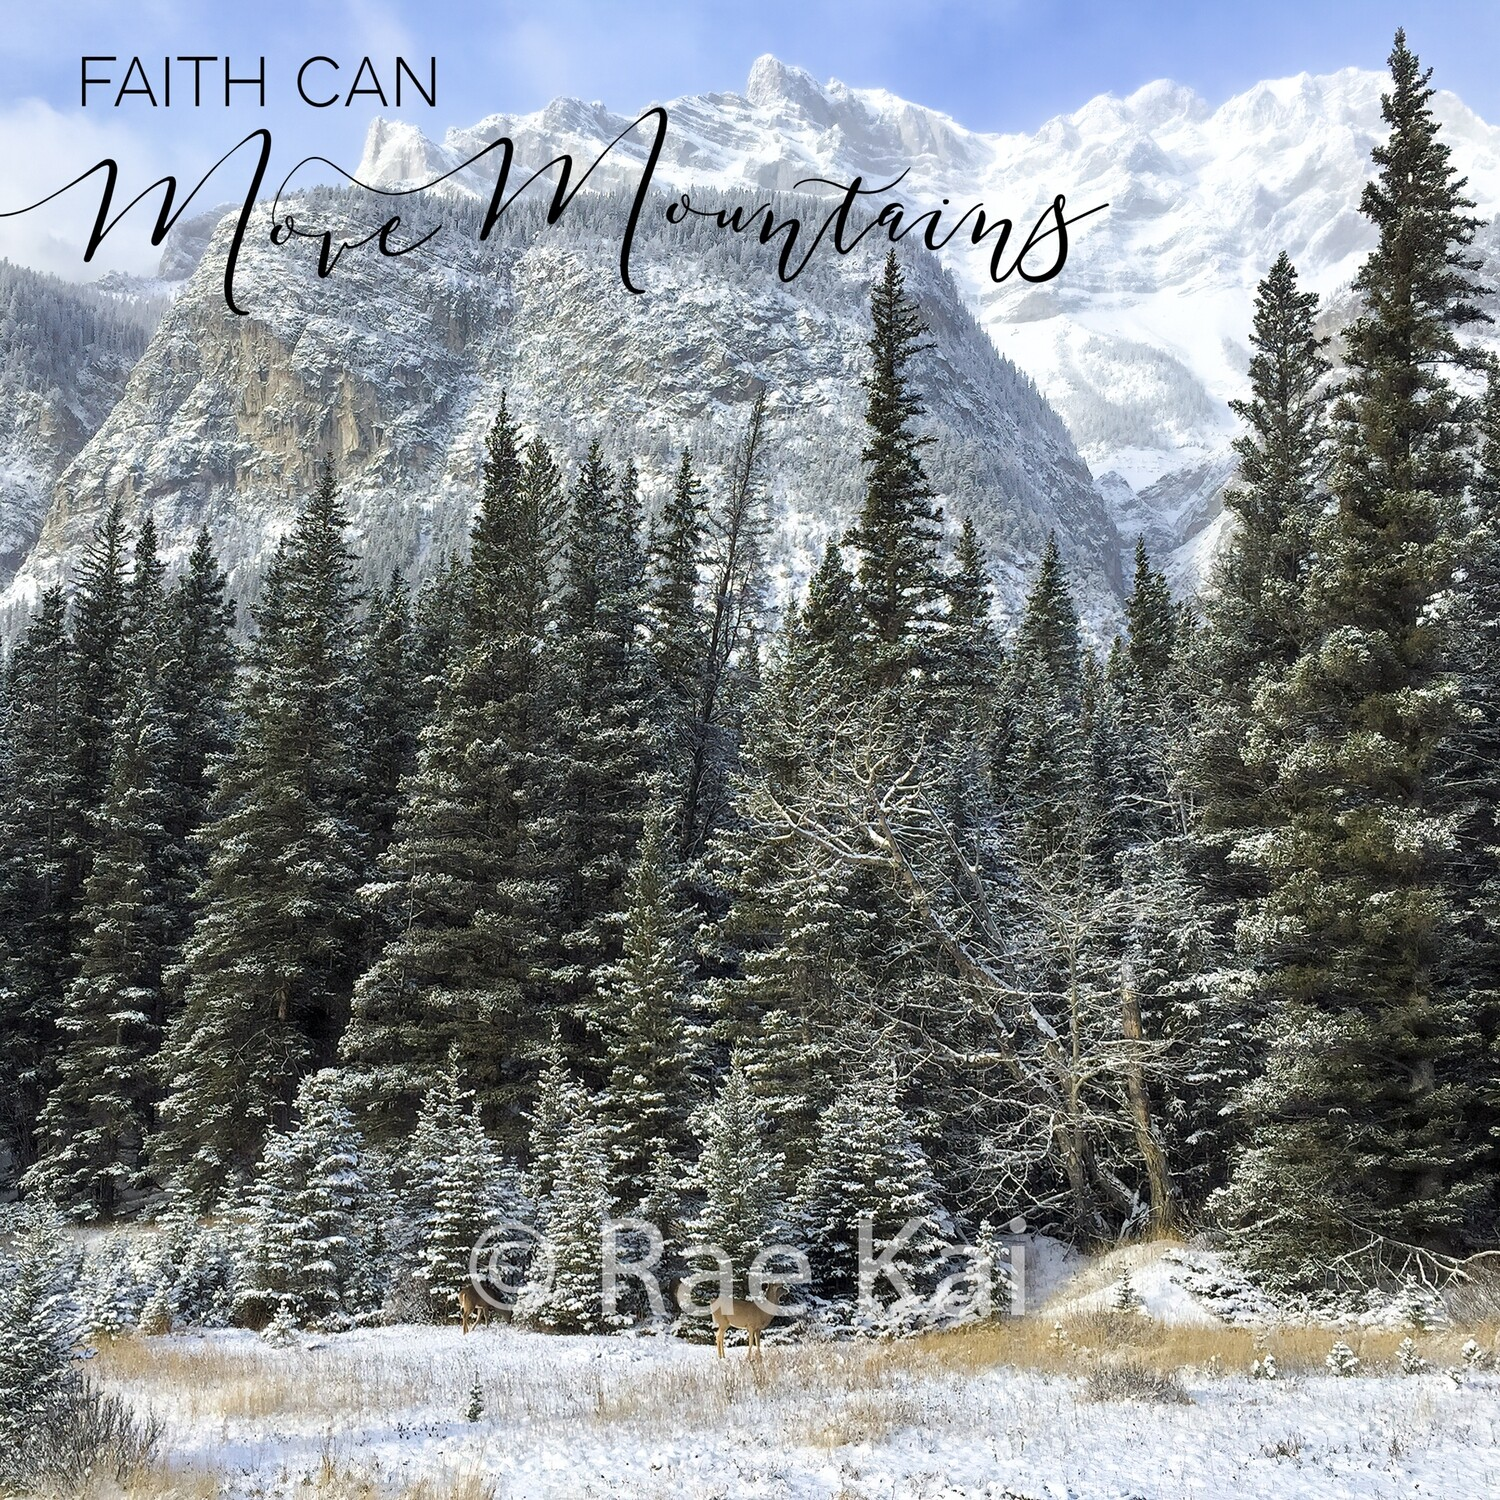 Faith Can Move Mountains-Inspirational Square Photo